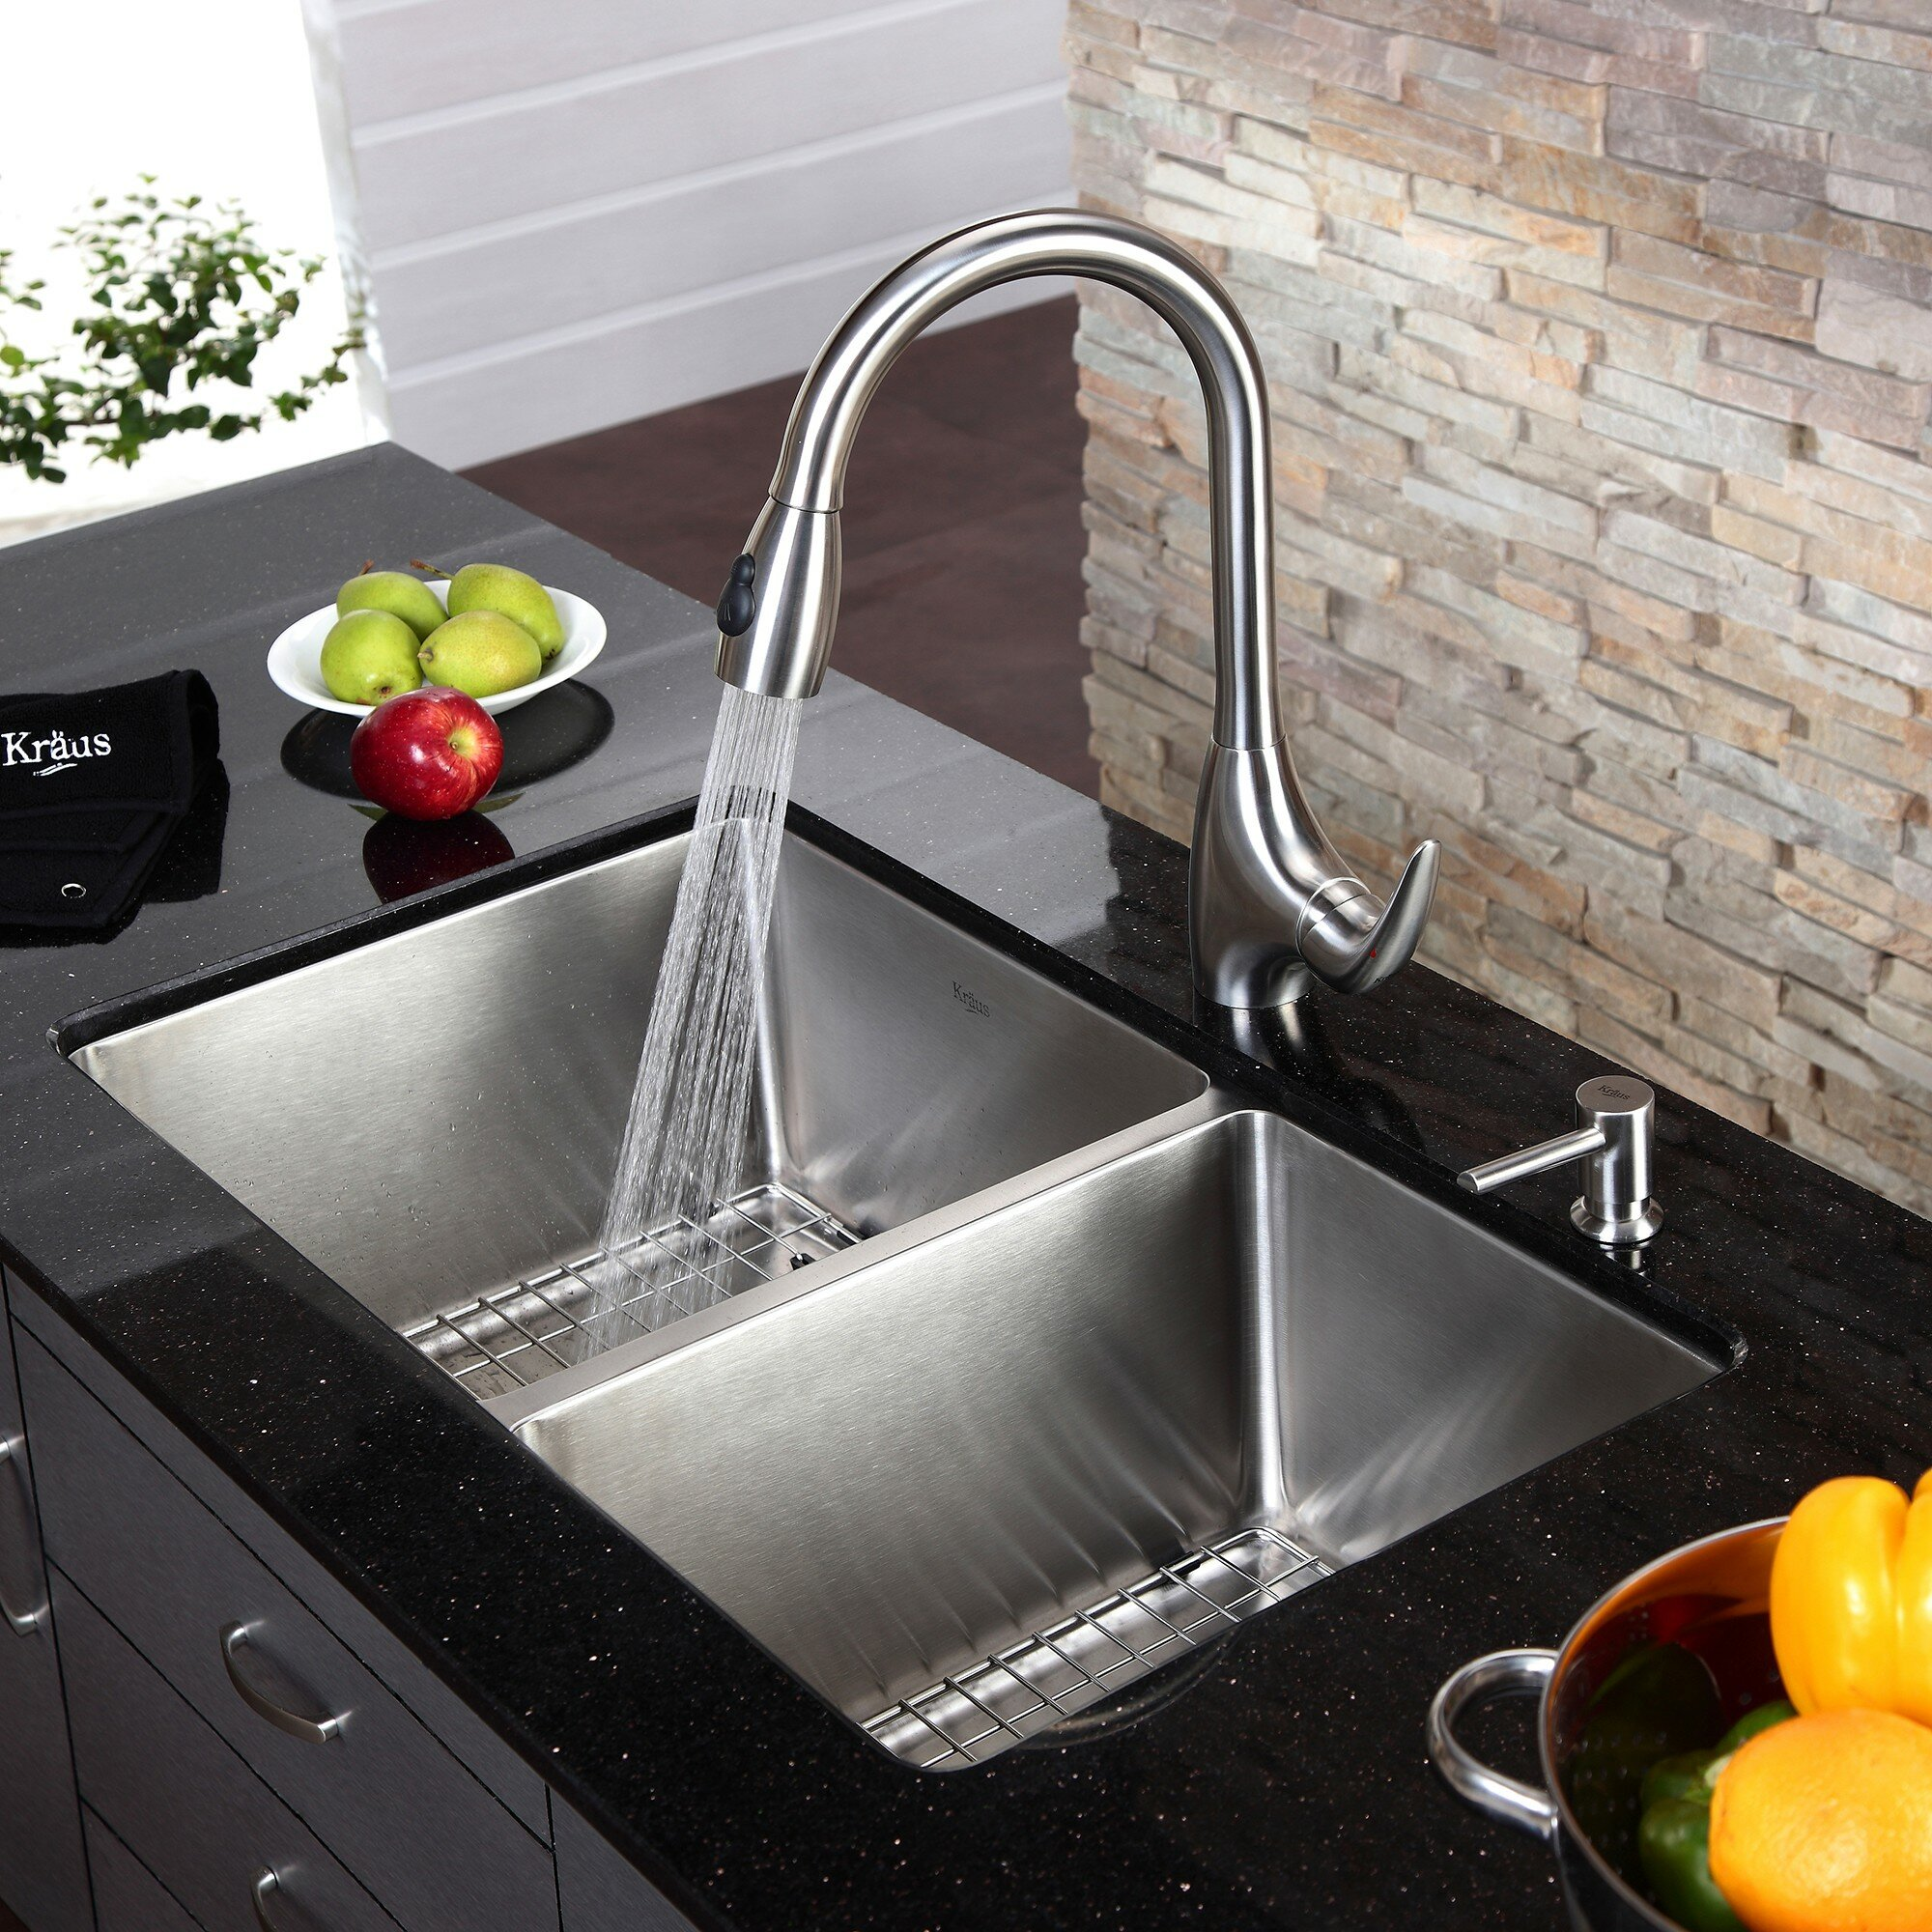 Cozy Kitchen Sinks Stainless Steel for Traditional Kitchen Design: Kitchen Sinks Stainless Steel | Single Stainless Steel Kitchen Sink | Brushed Stainless Steel Undermount Kitchen Sink